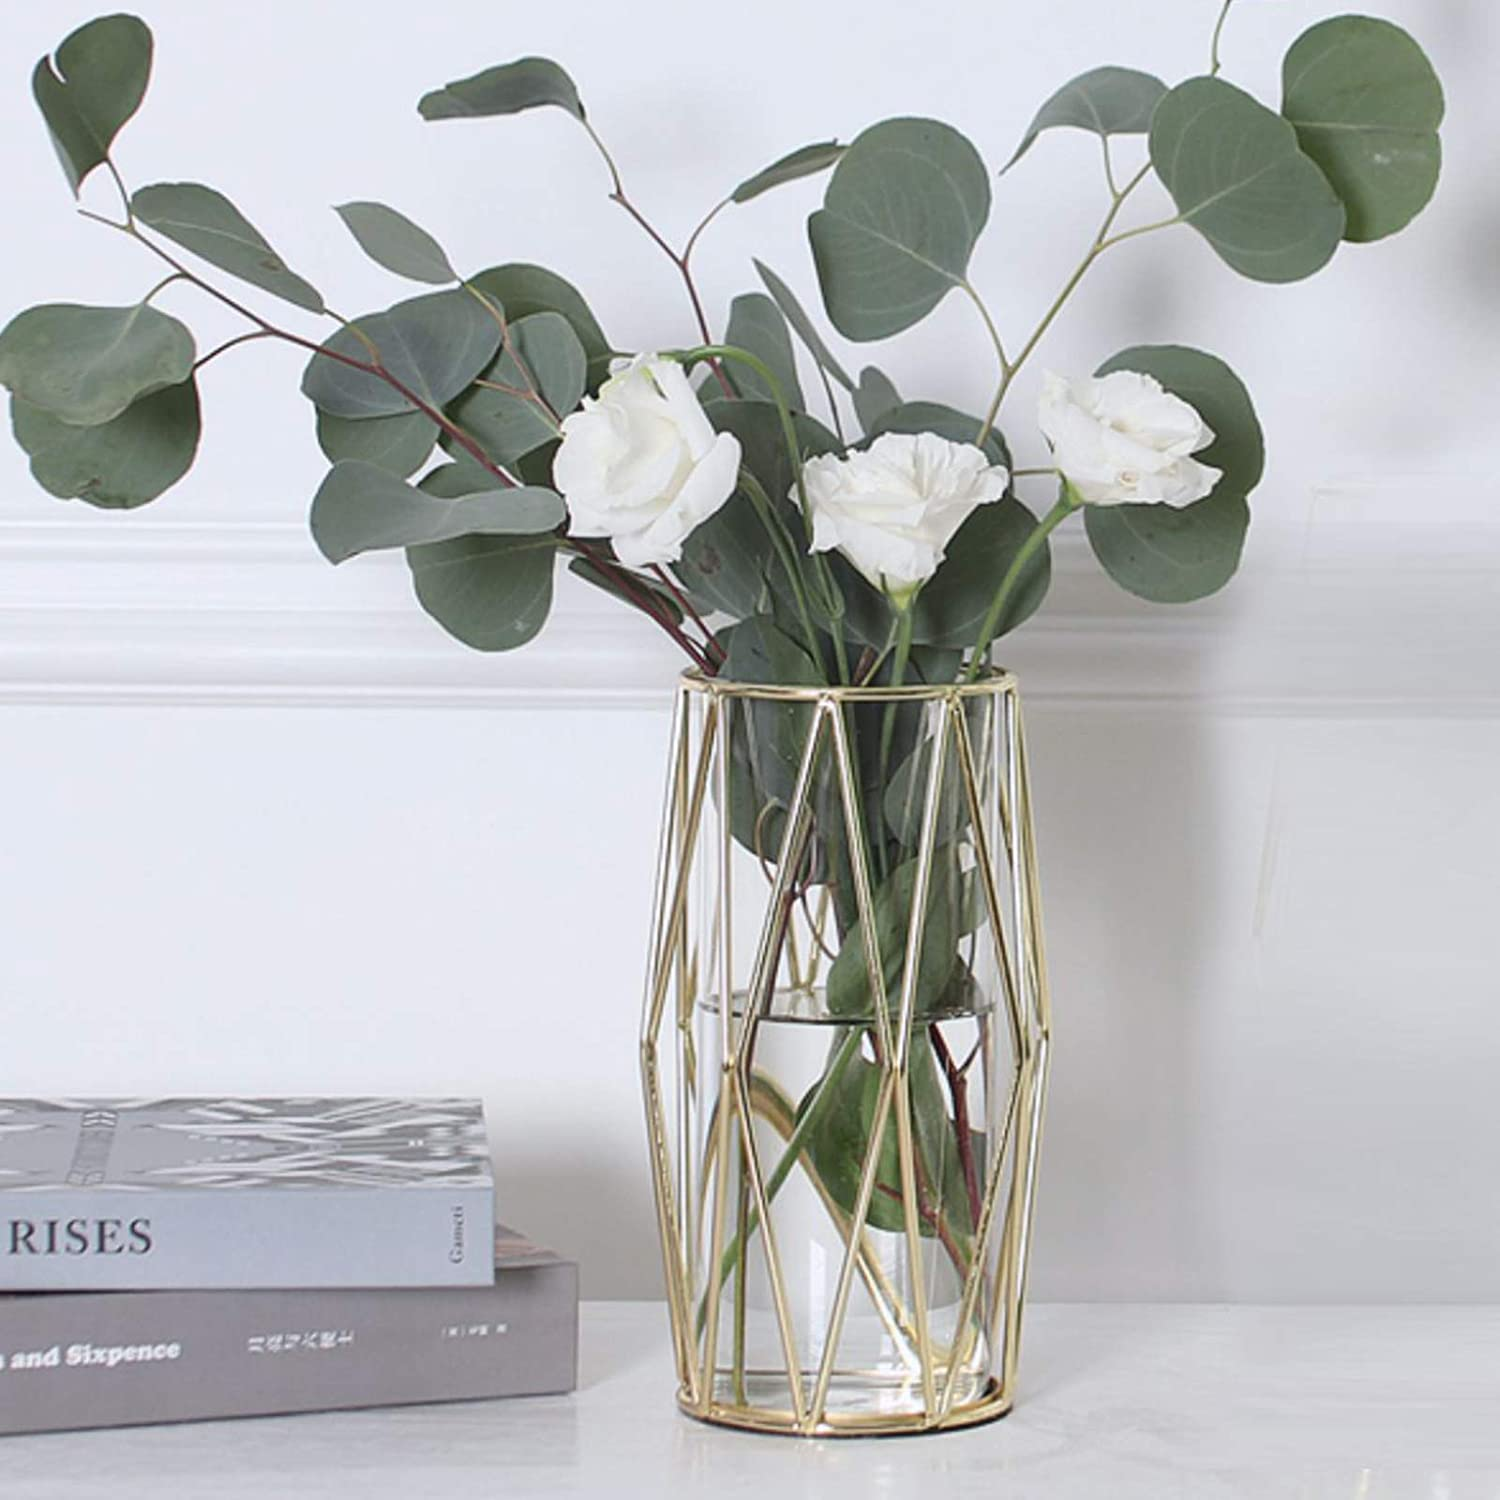 One of the most thoughtful gift ideas for women over 40 is a glass vase that looks beautiful placed anywhere with sweet-smelling flowers in it. This peculiar gift will leave her smiling every time she looks at it.